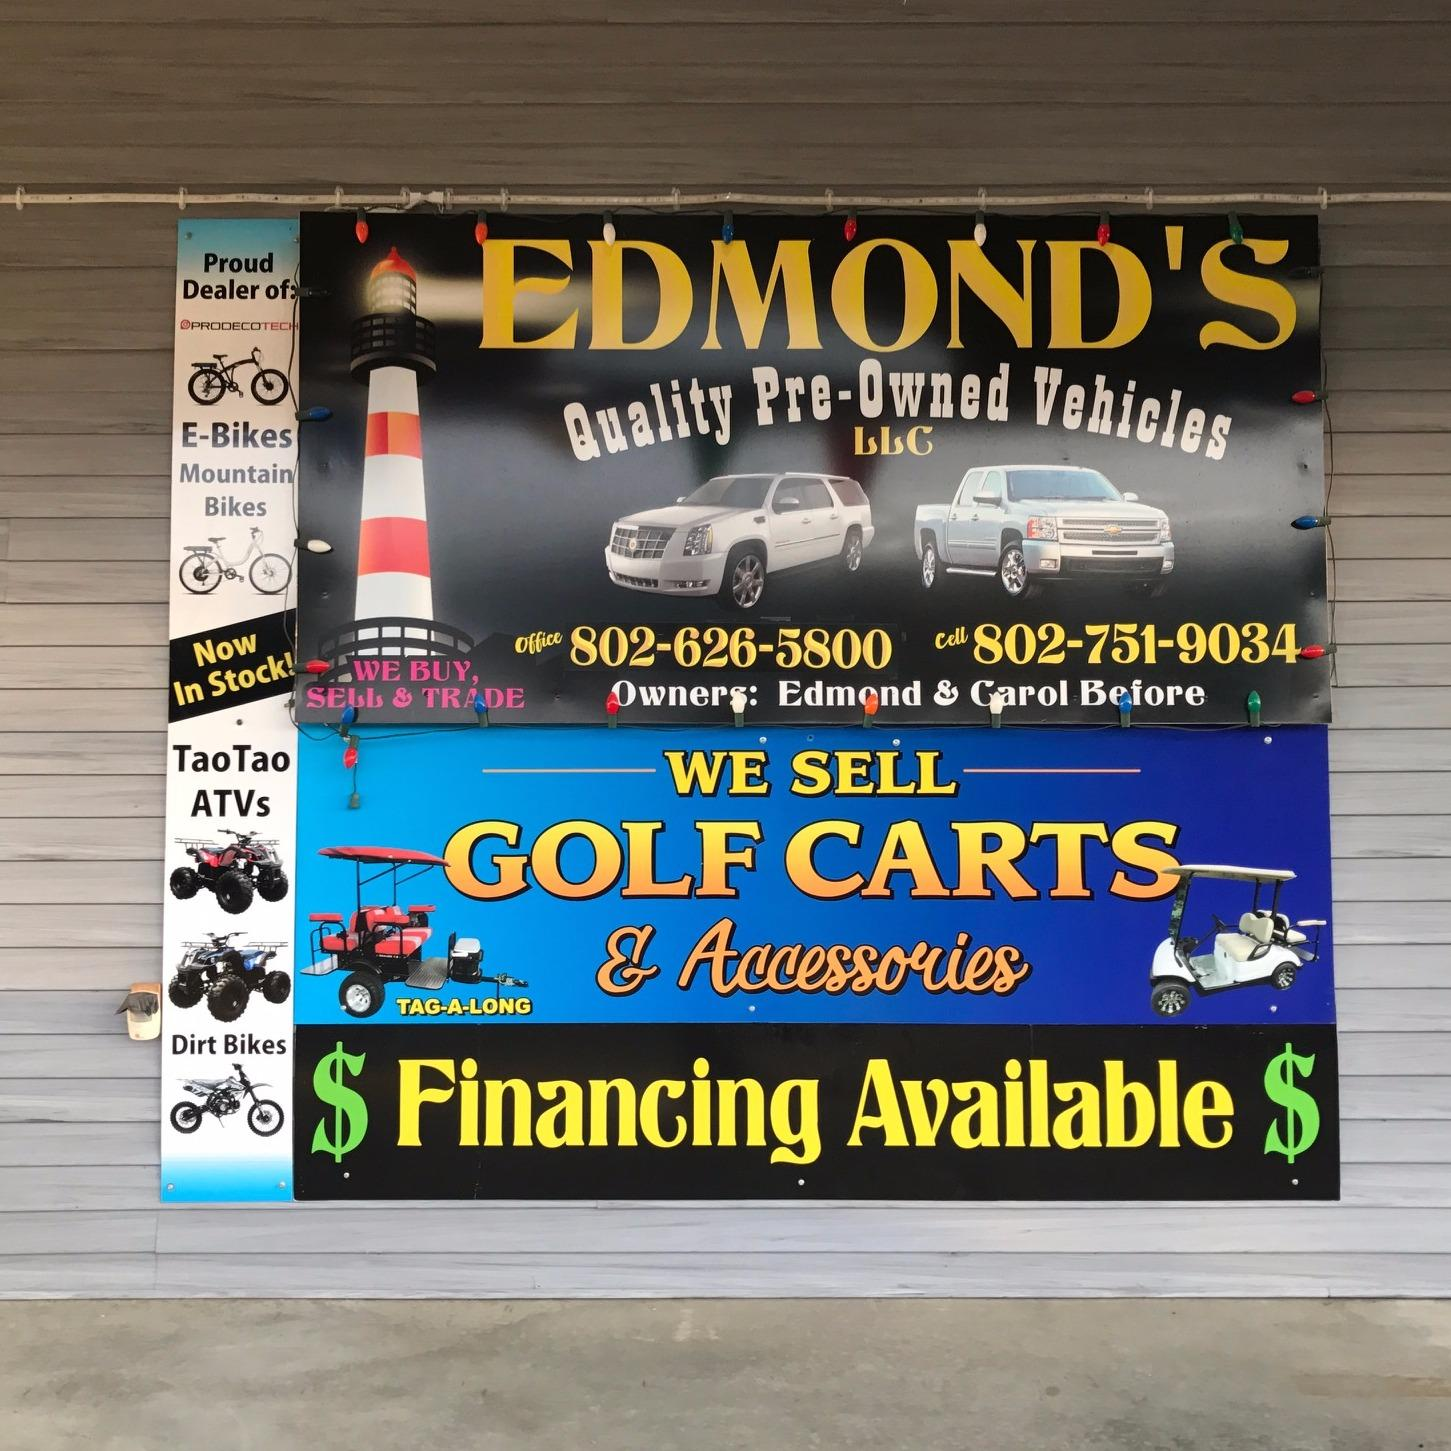 edmond 39 s quality pre owned vehicles llc coupons near me in lyndonville 8coupons. Black Bedroom Furniture Sets. Home Design Ideas